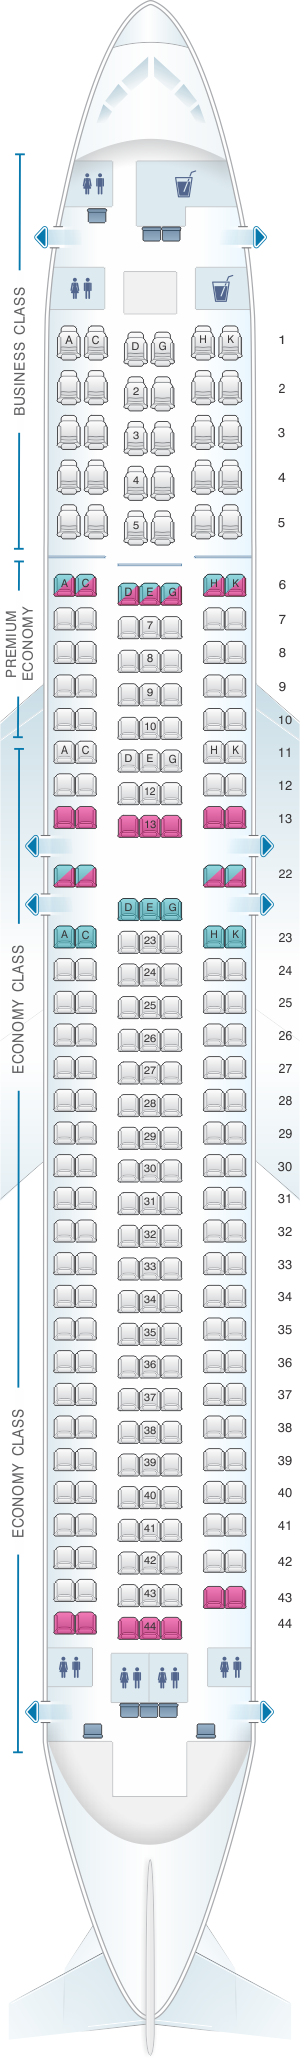 Seat map for Condor Boeing B767 300ER version3